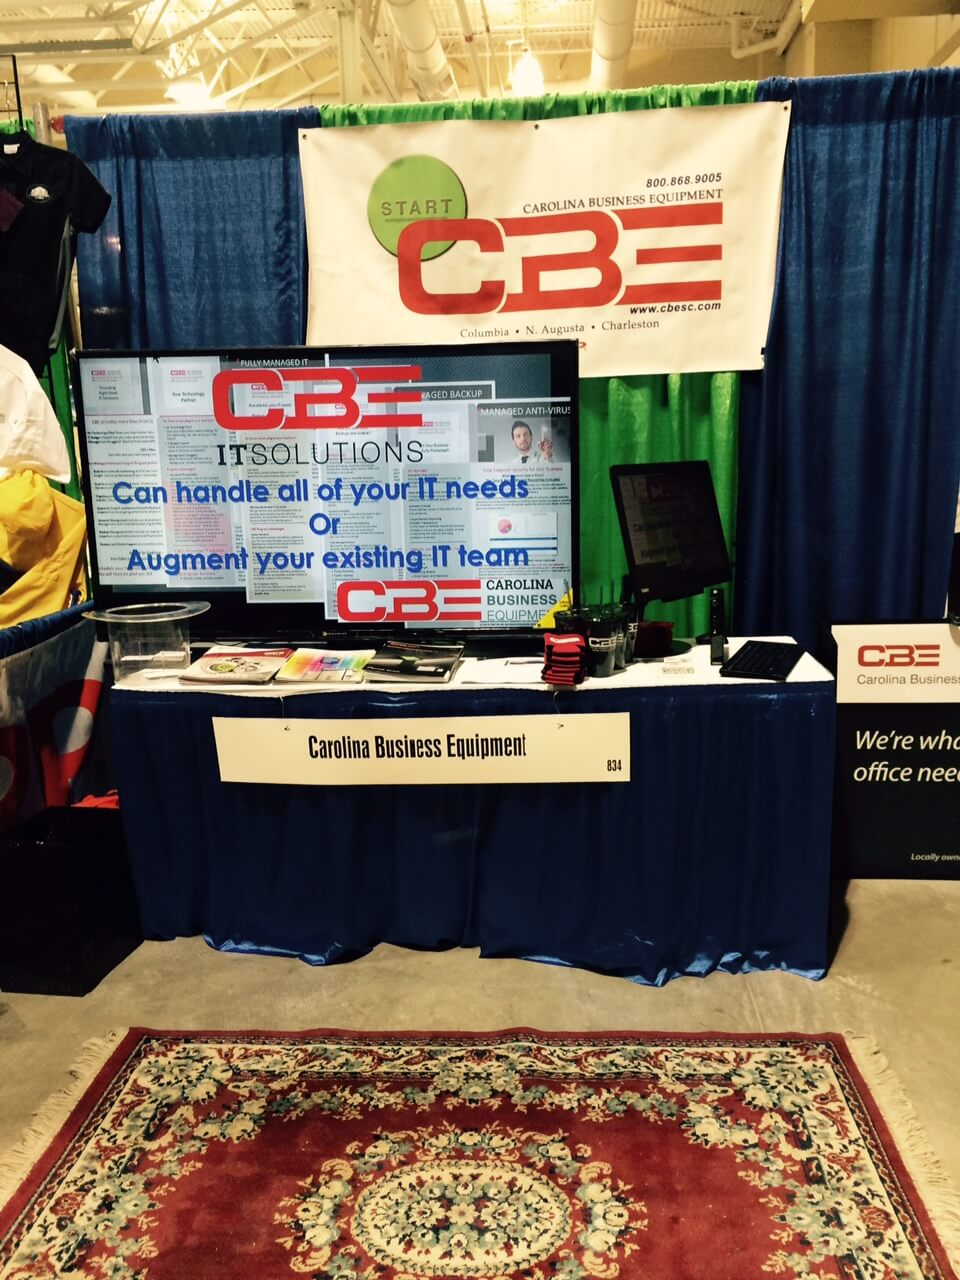 CBE booth at the North Charleston Business Conference and Expo